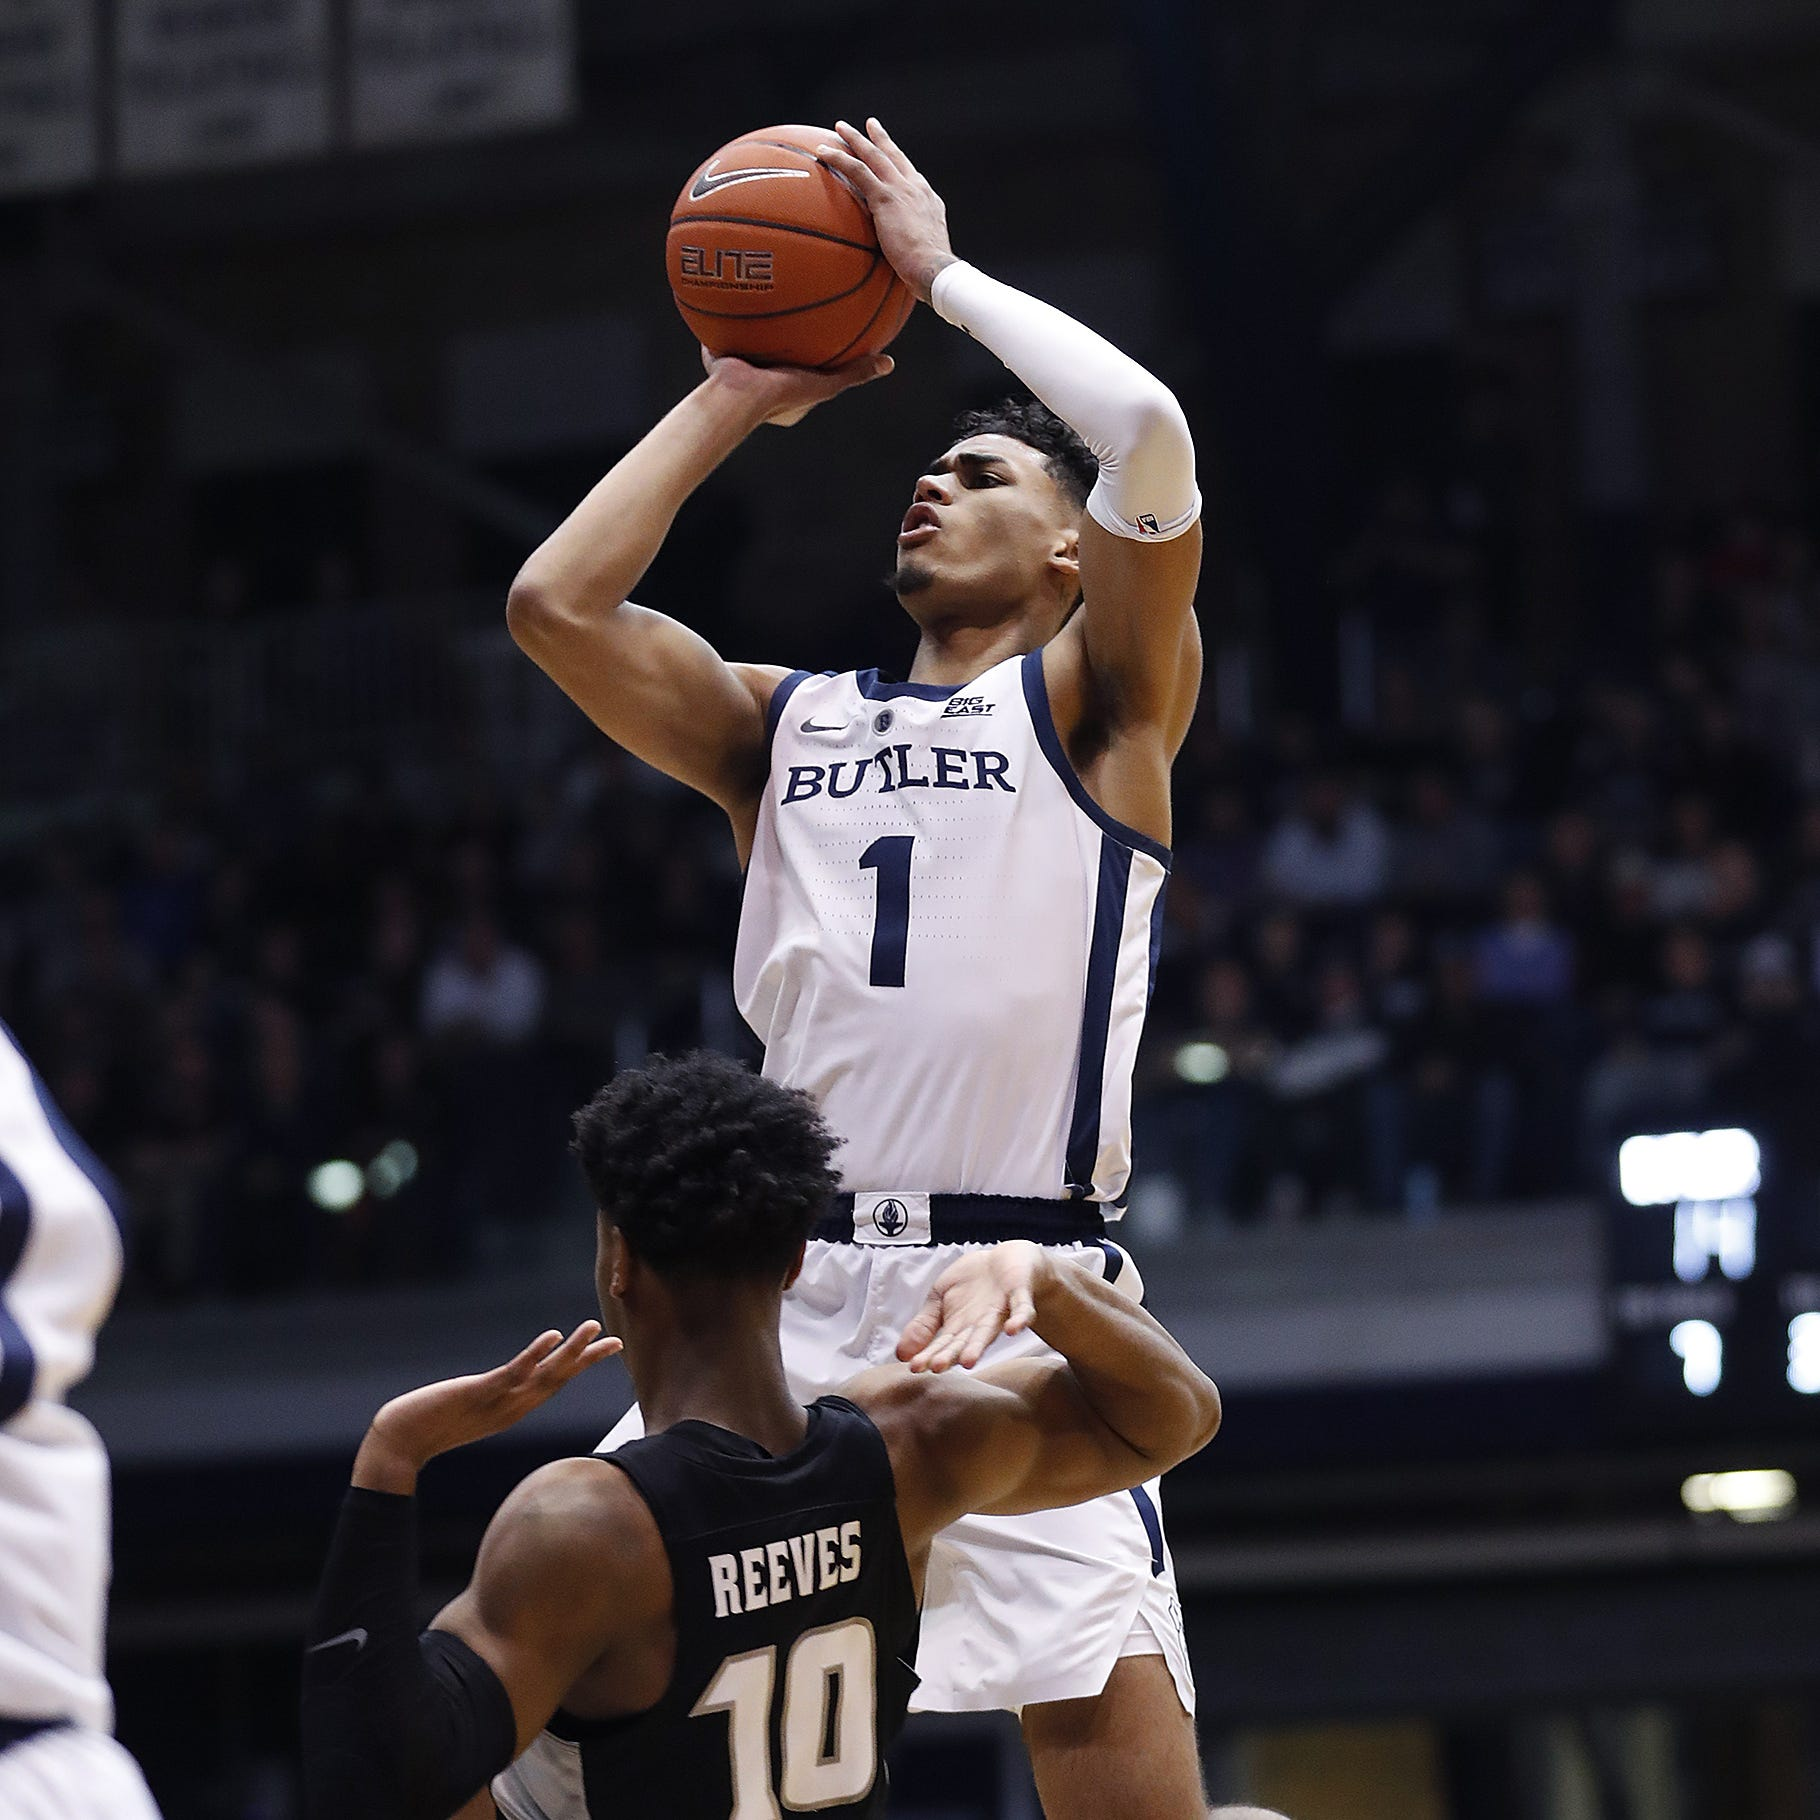 Insider: Years of inferior recruiting classes is catching up to Butler